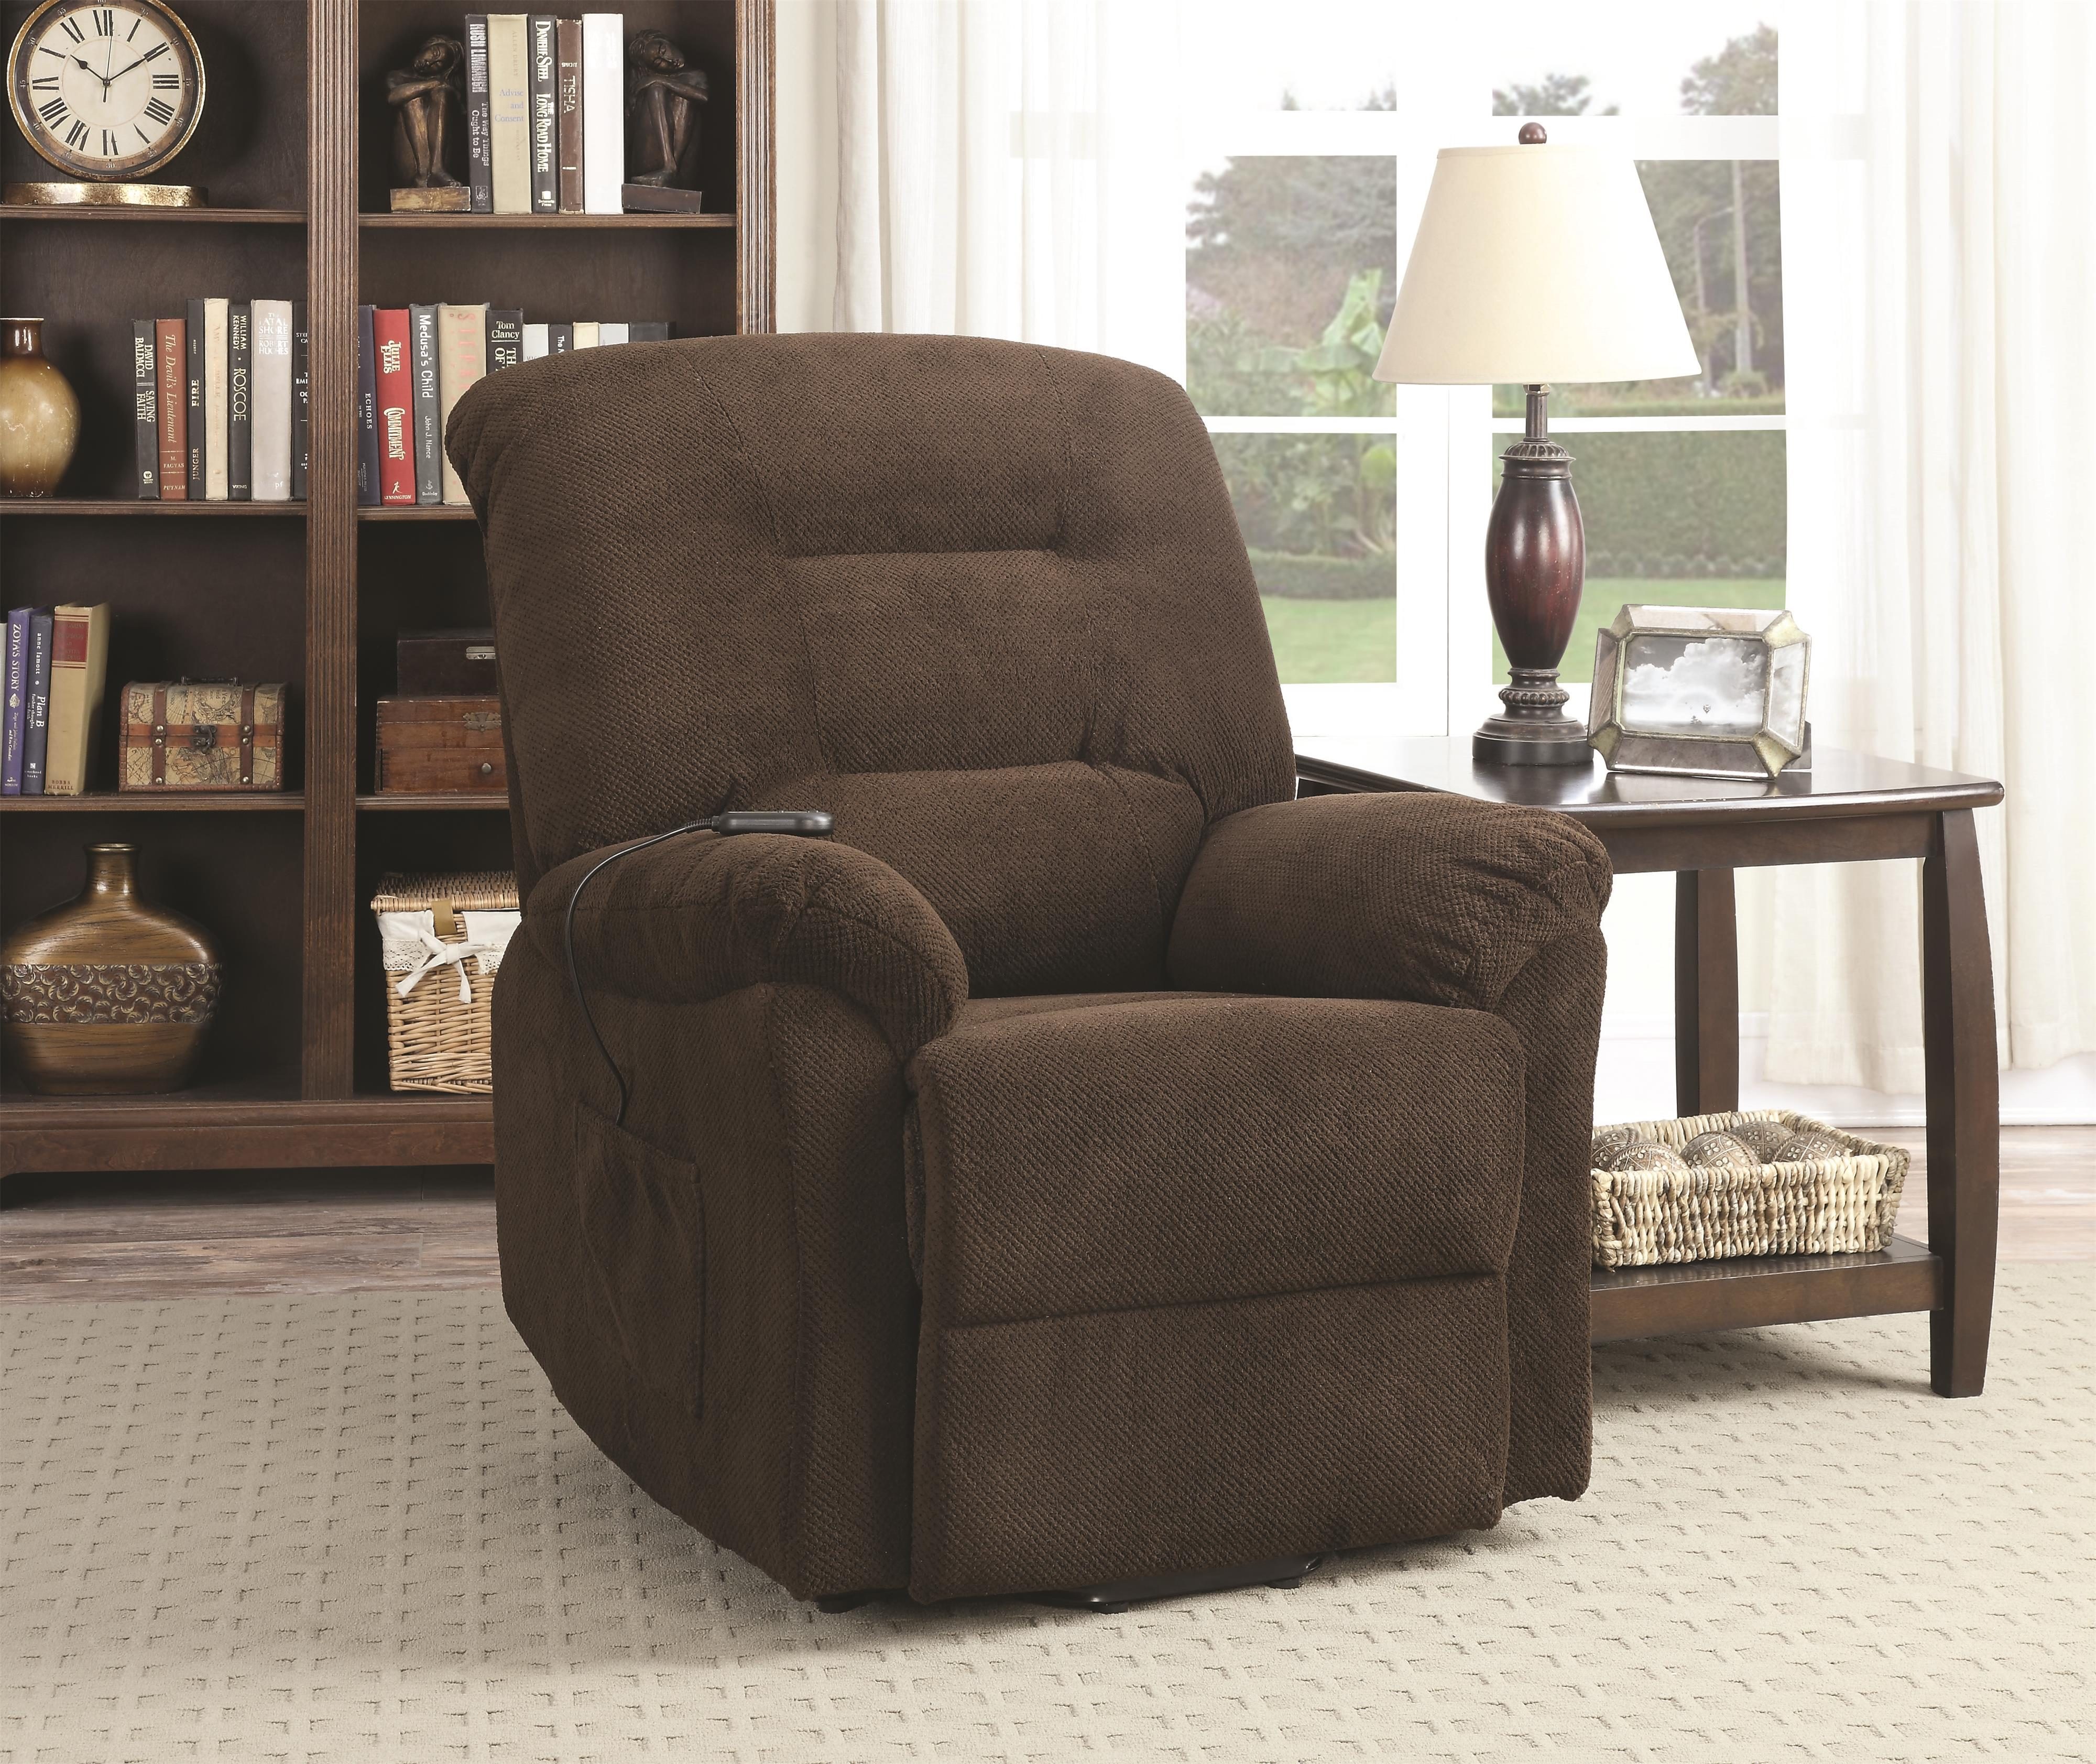 Coaster Recliners Power Lift Recliner - Item Number: 600397